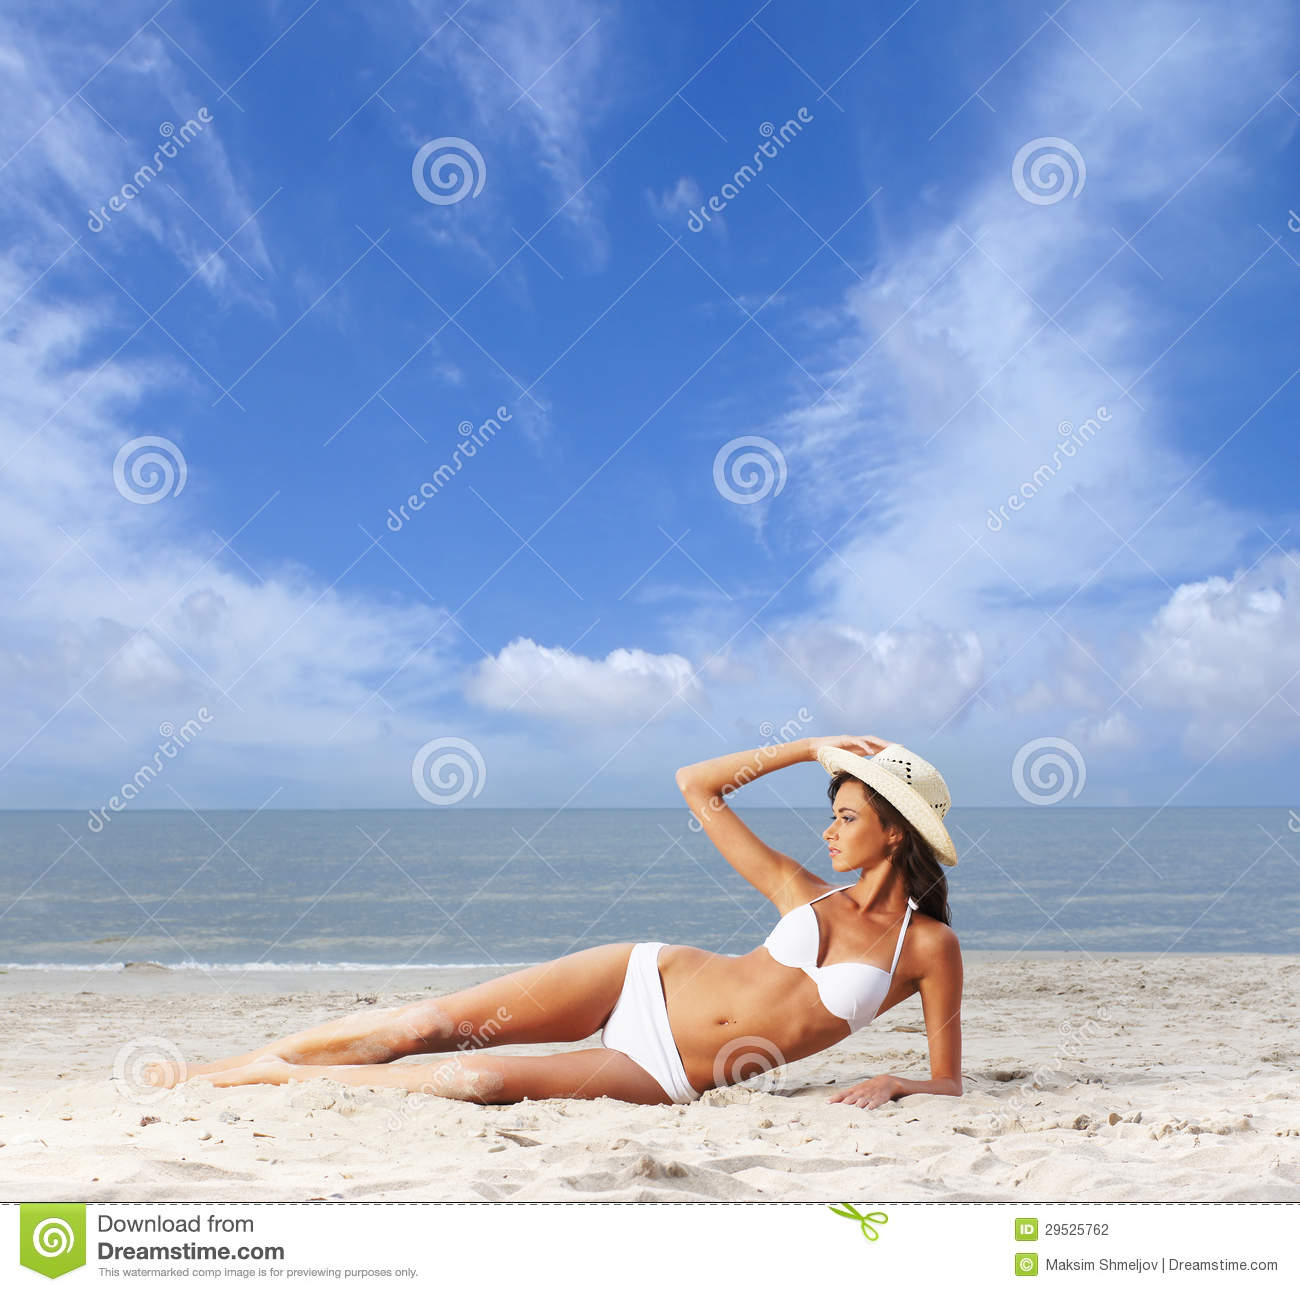 Couple At The Beach Stock Image Image Of Caucasian: A Young Brunette Woman In A White Swimsuit On The Beach